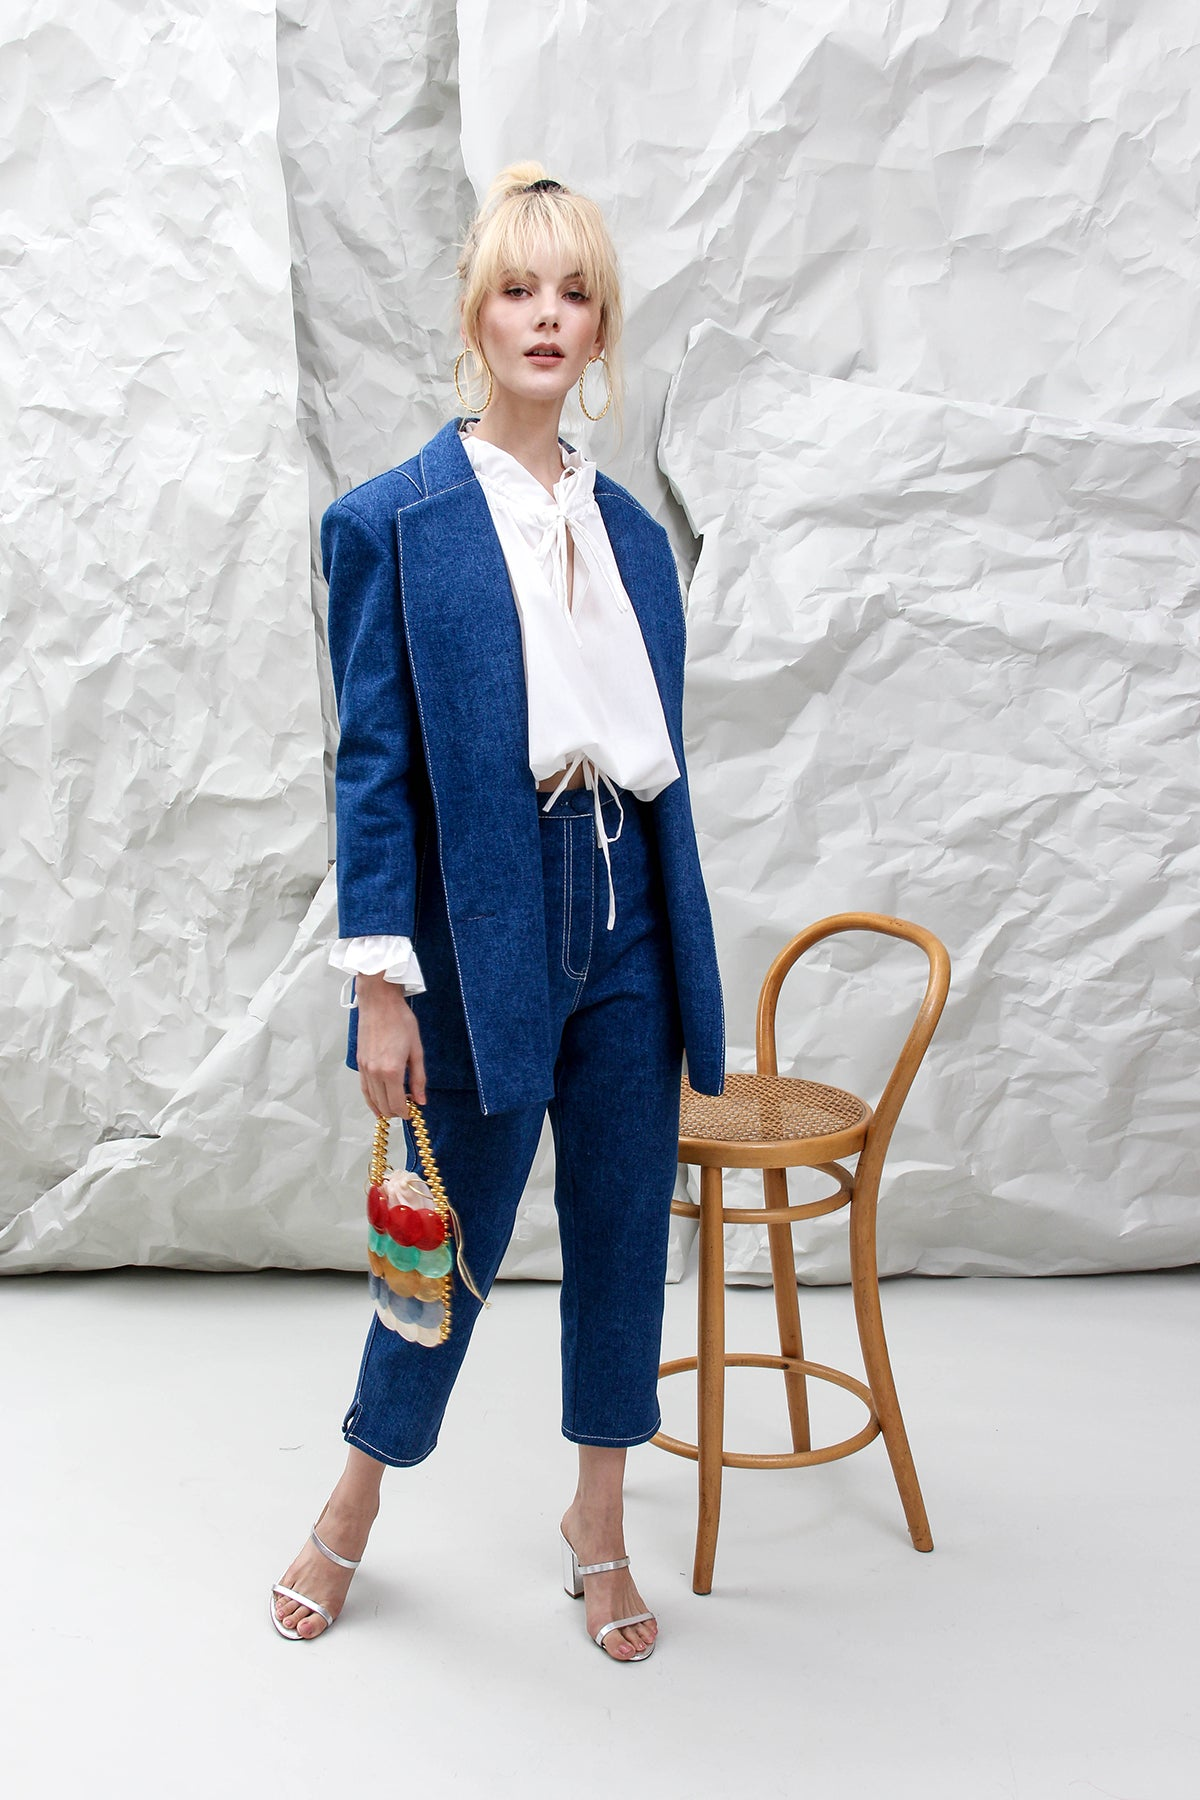 THE ELISA DENIM SUIT